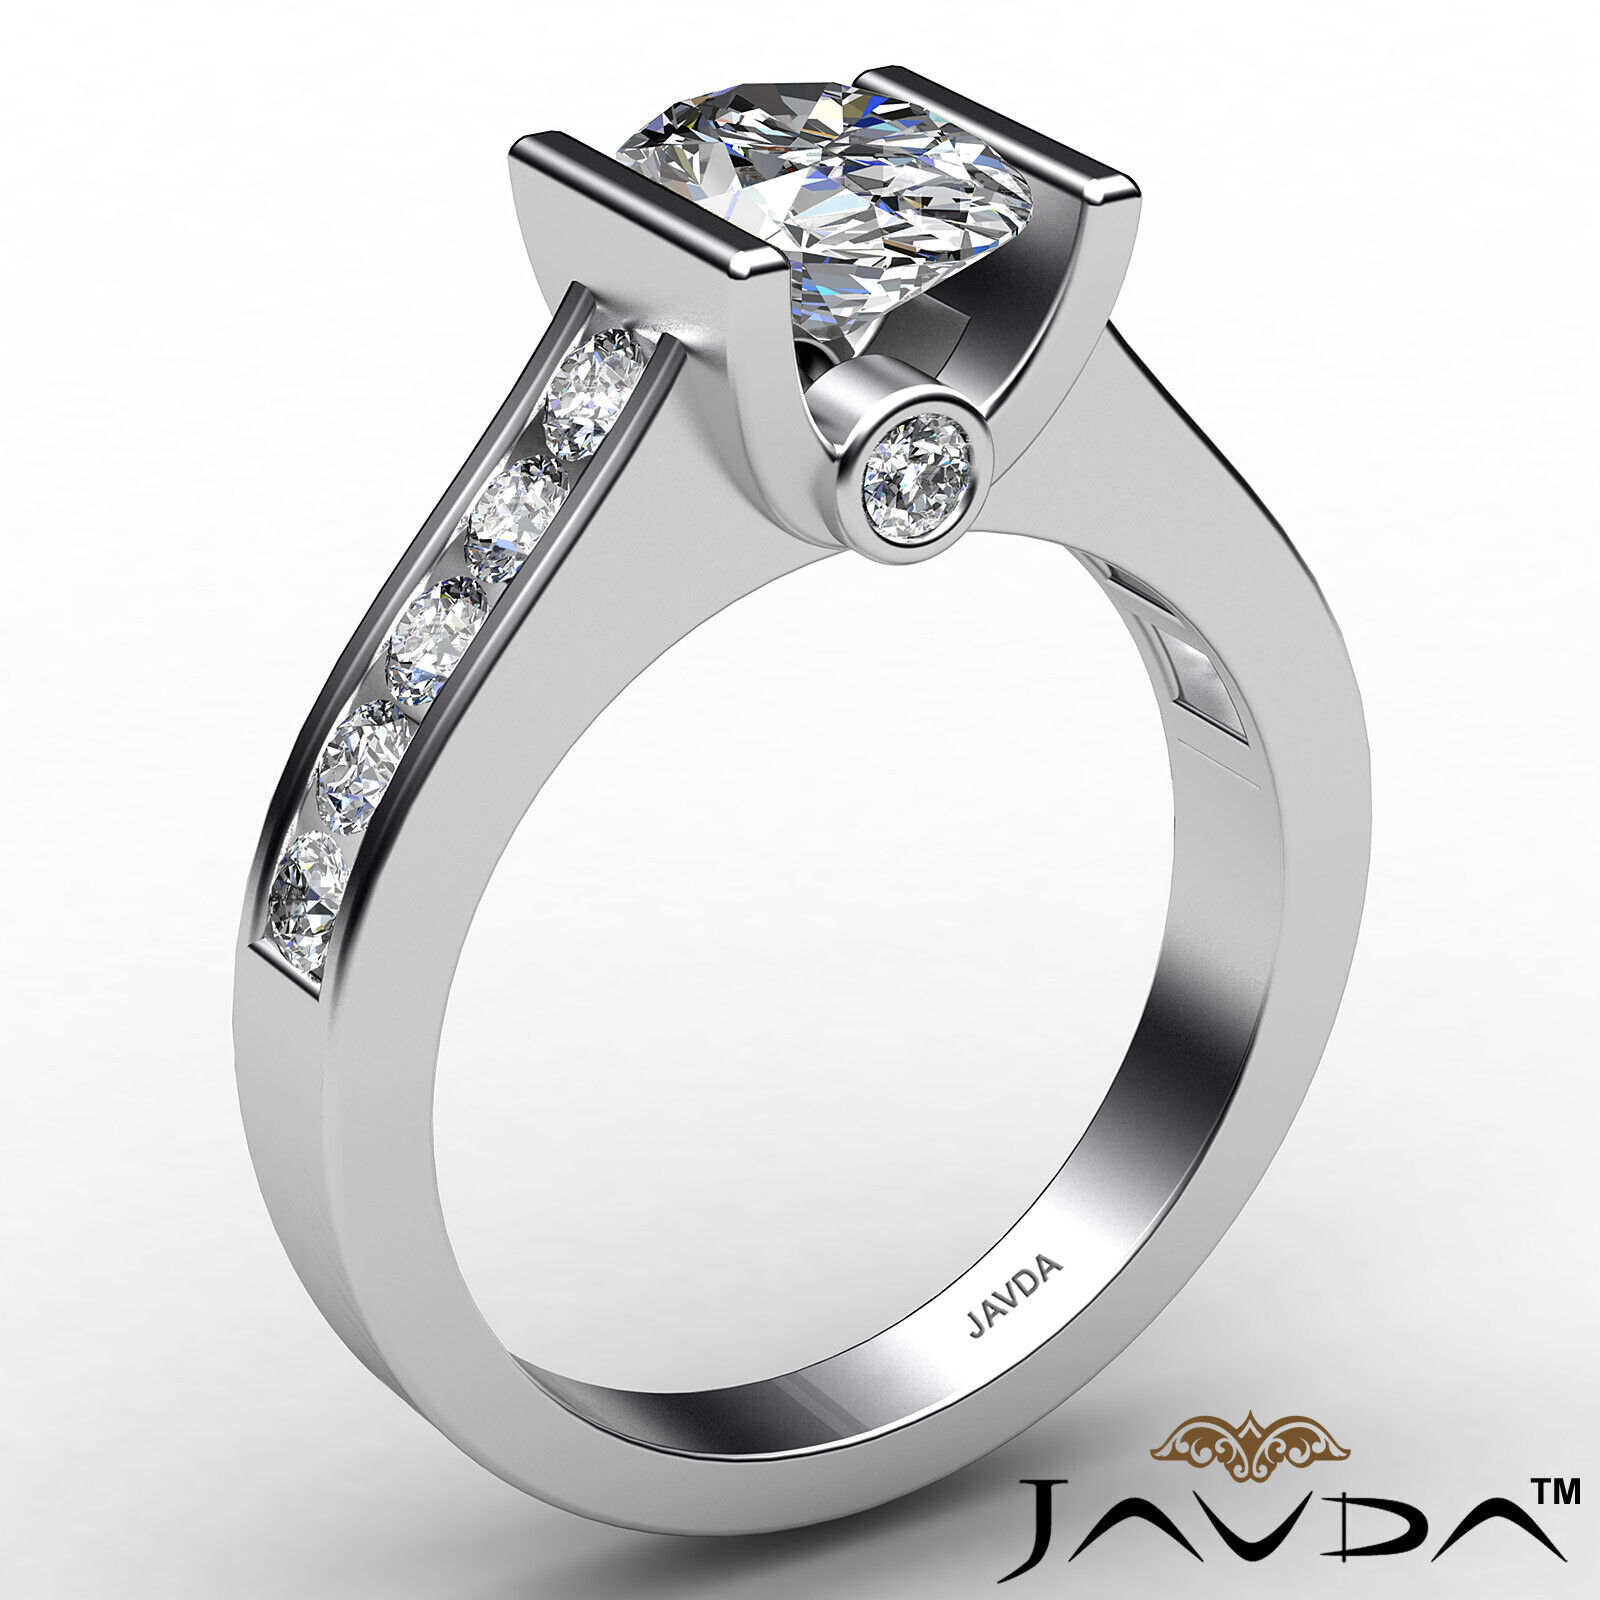 Oval Diamond Engagement Bezel Setting Ring GIA, E Color & SI2 clarity 1.4 ctw. 3